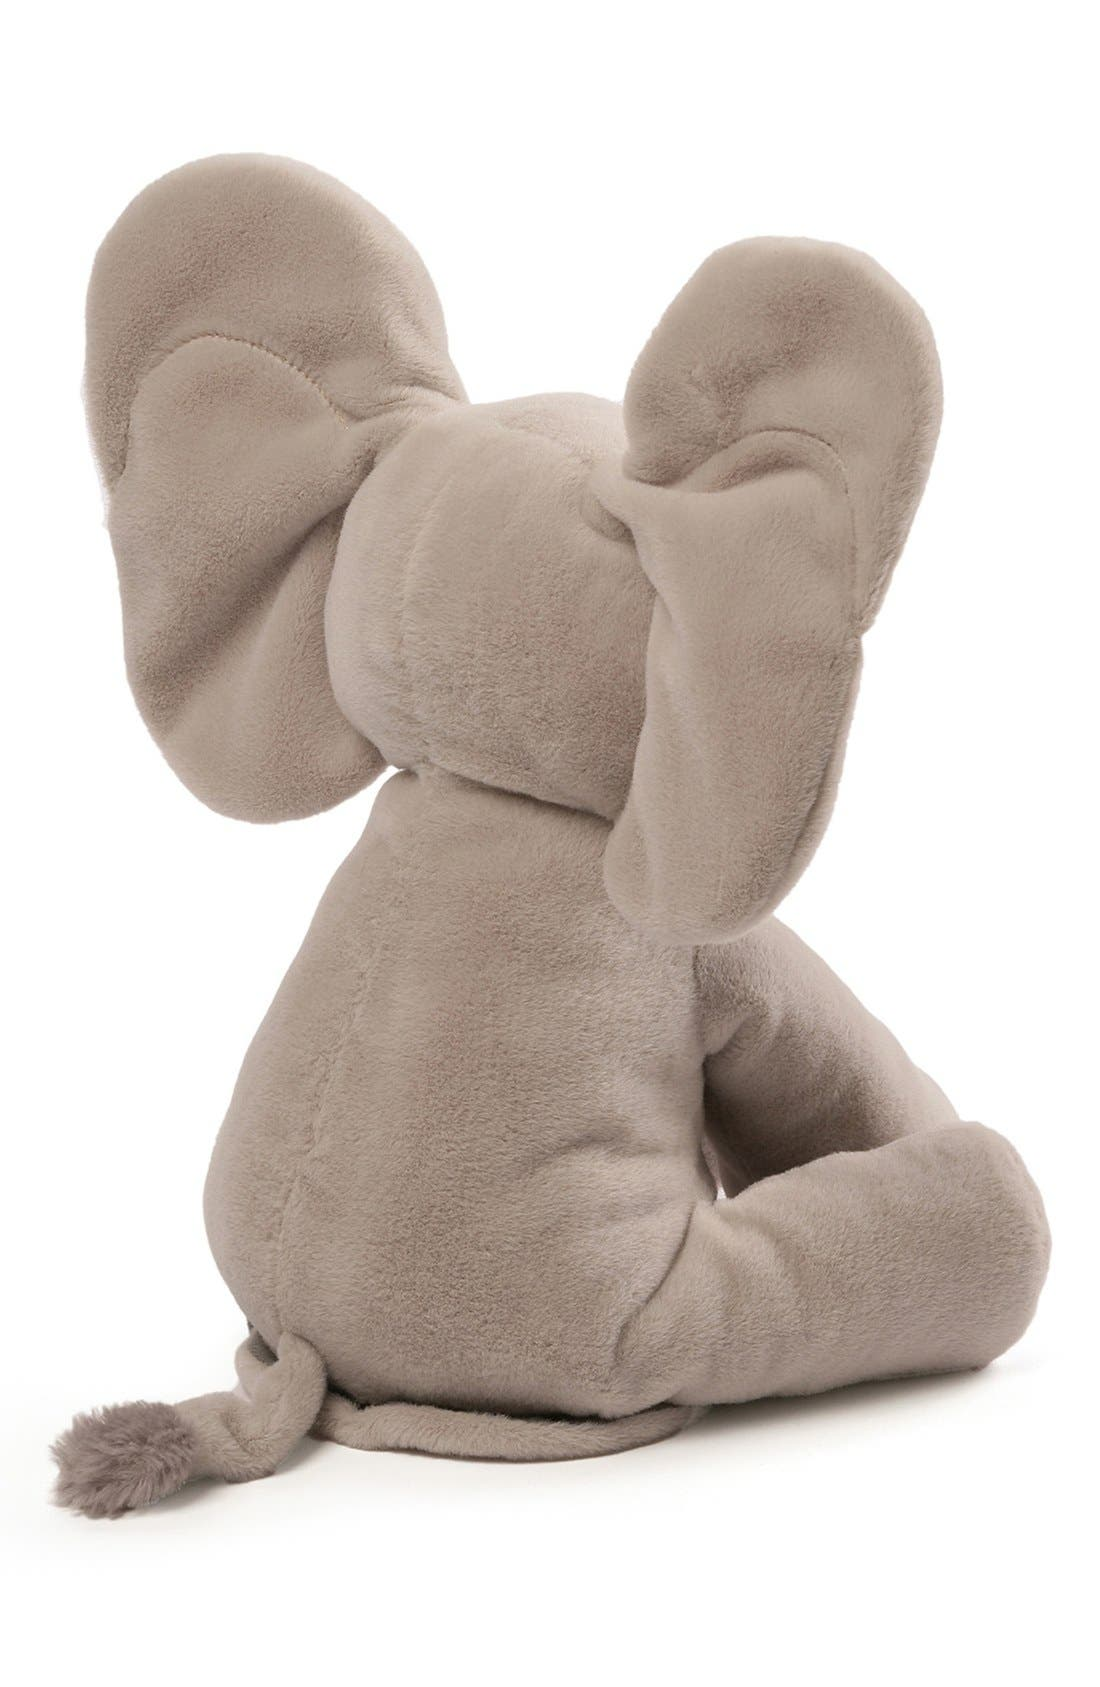 GUND, Baby Gund 'Flappy The Elephant' Musical Elephant, Alternate thumbnail 2, color, GREY